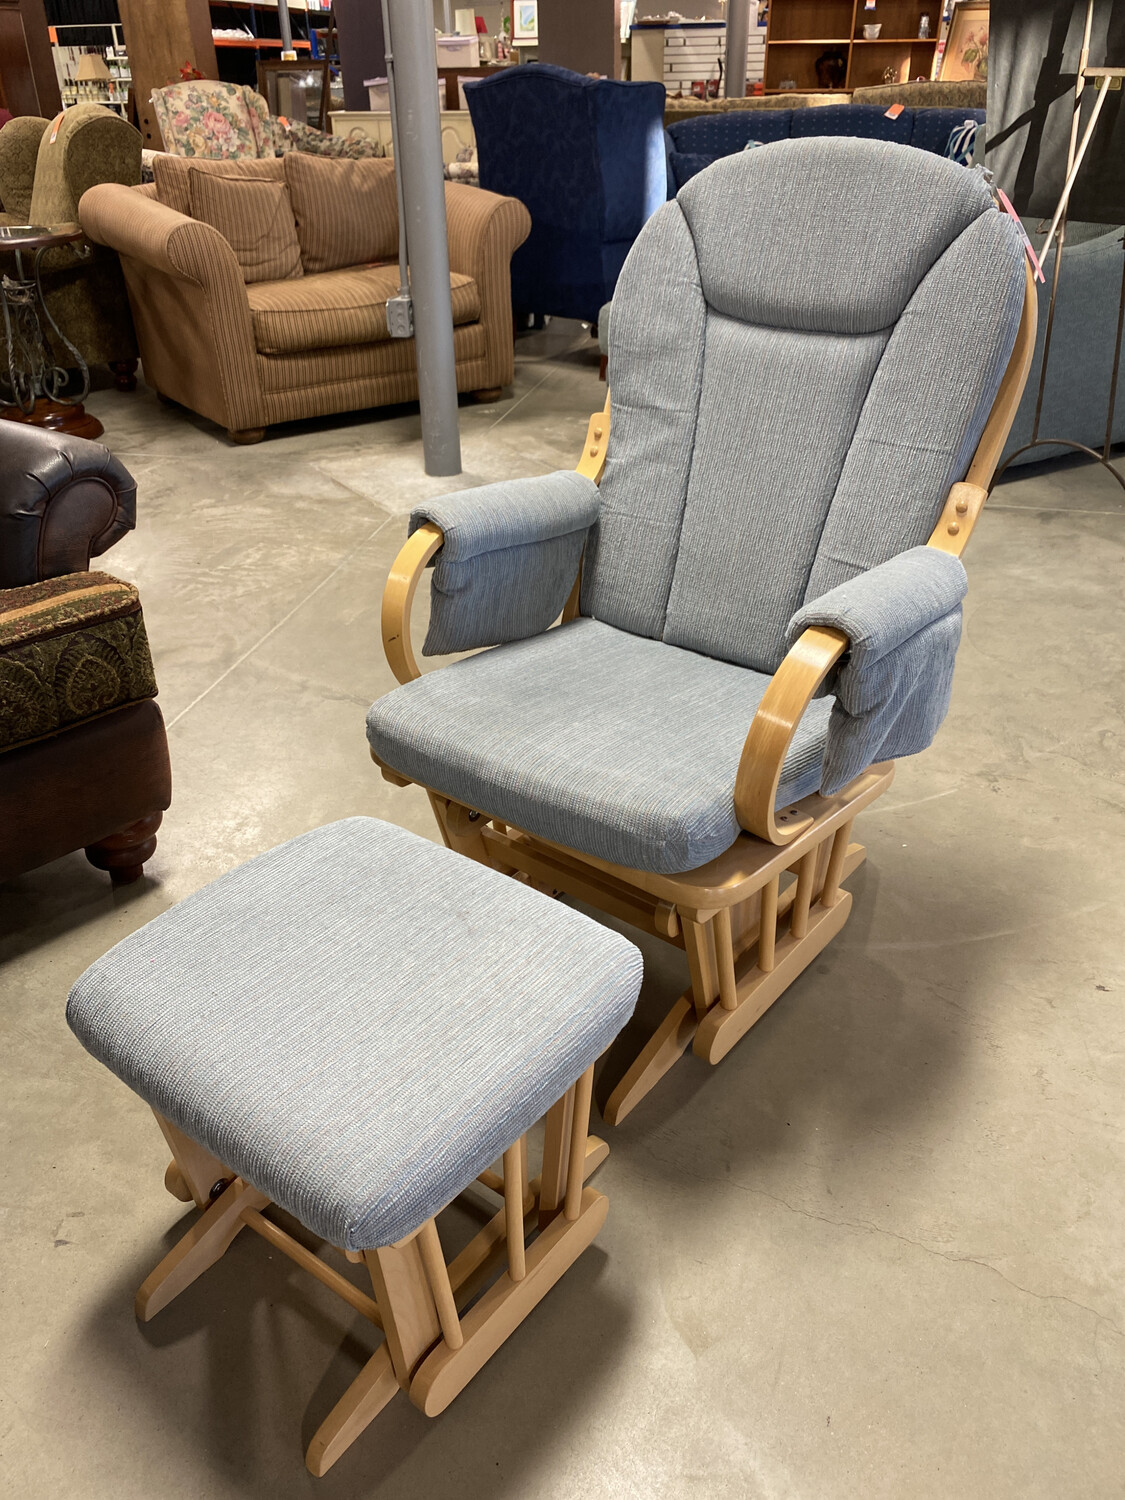 SWIVEL ROCKER WITH OTTOMAN